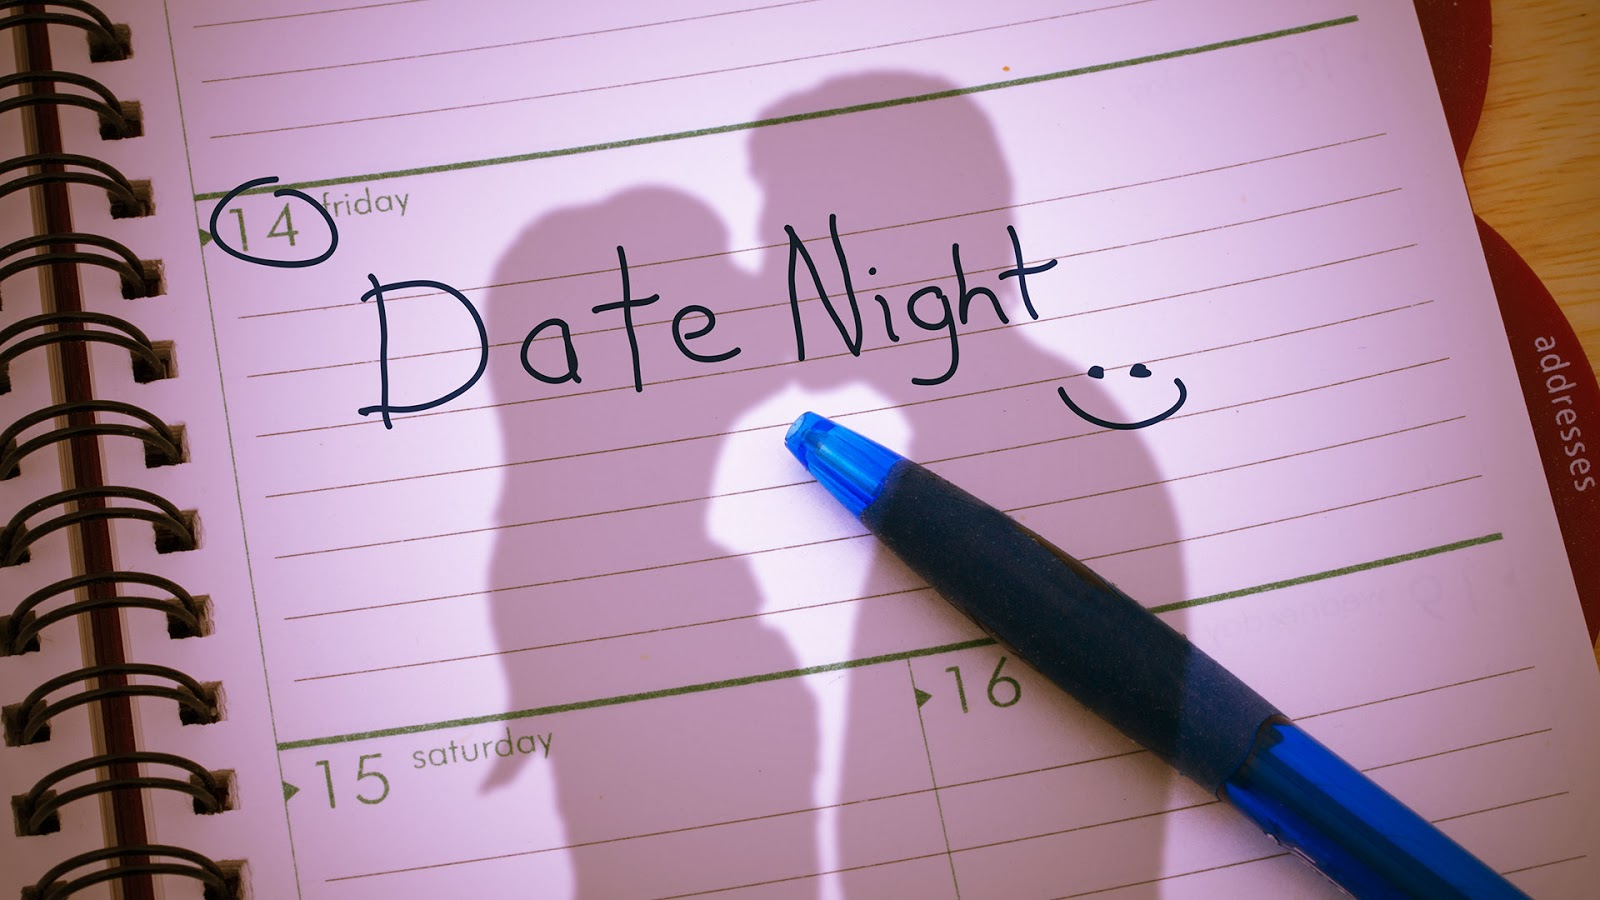 A planner showing a date night scheduled for Friday.